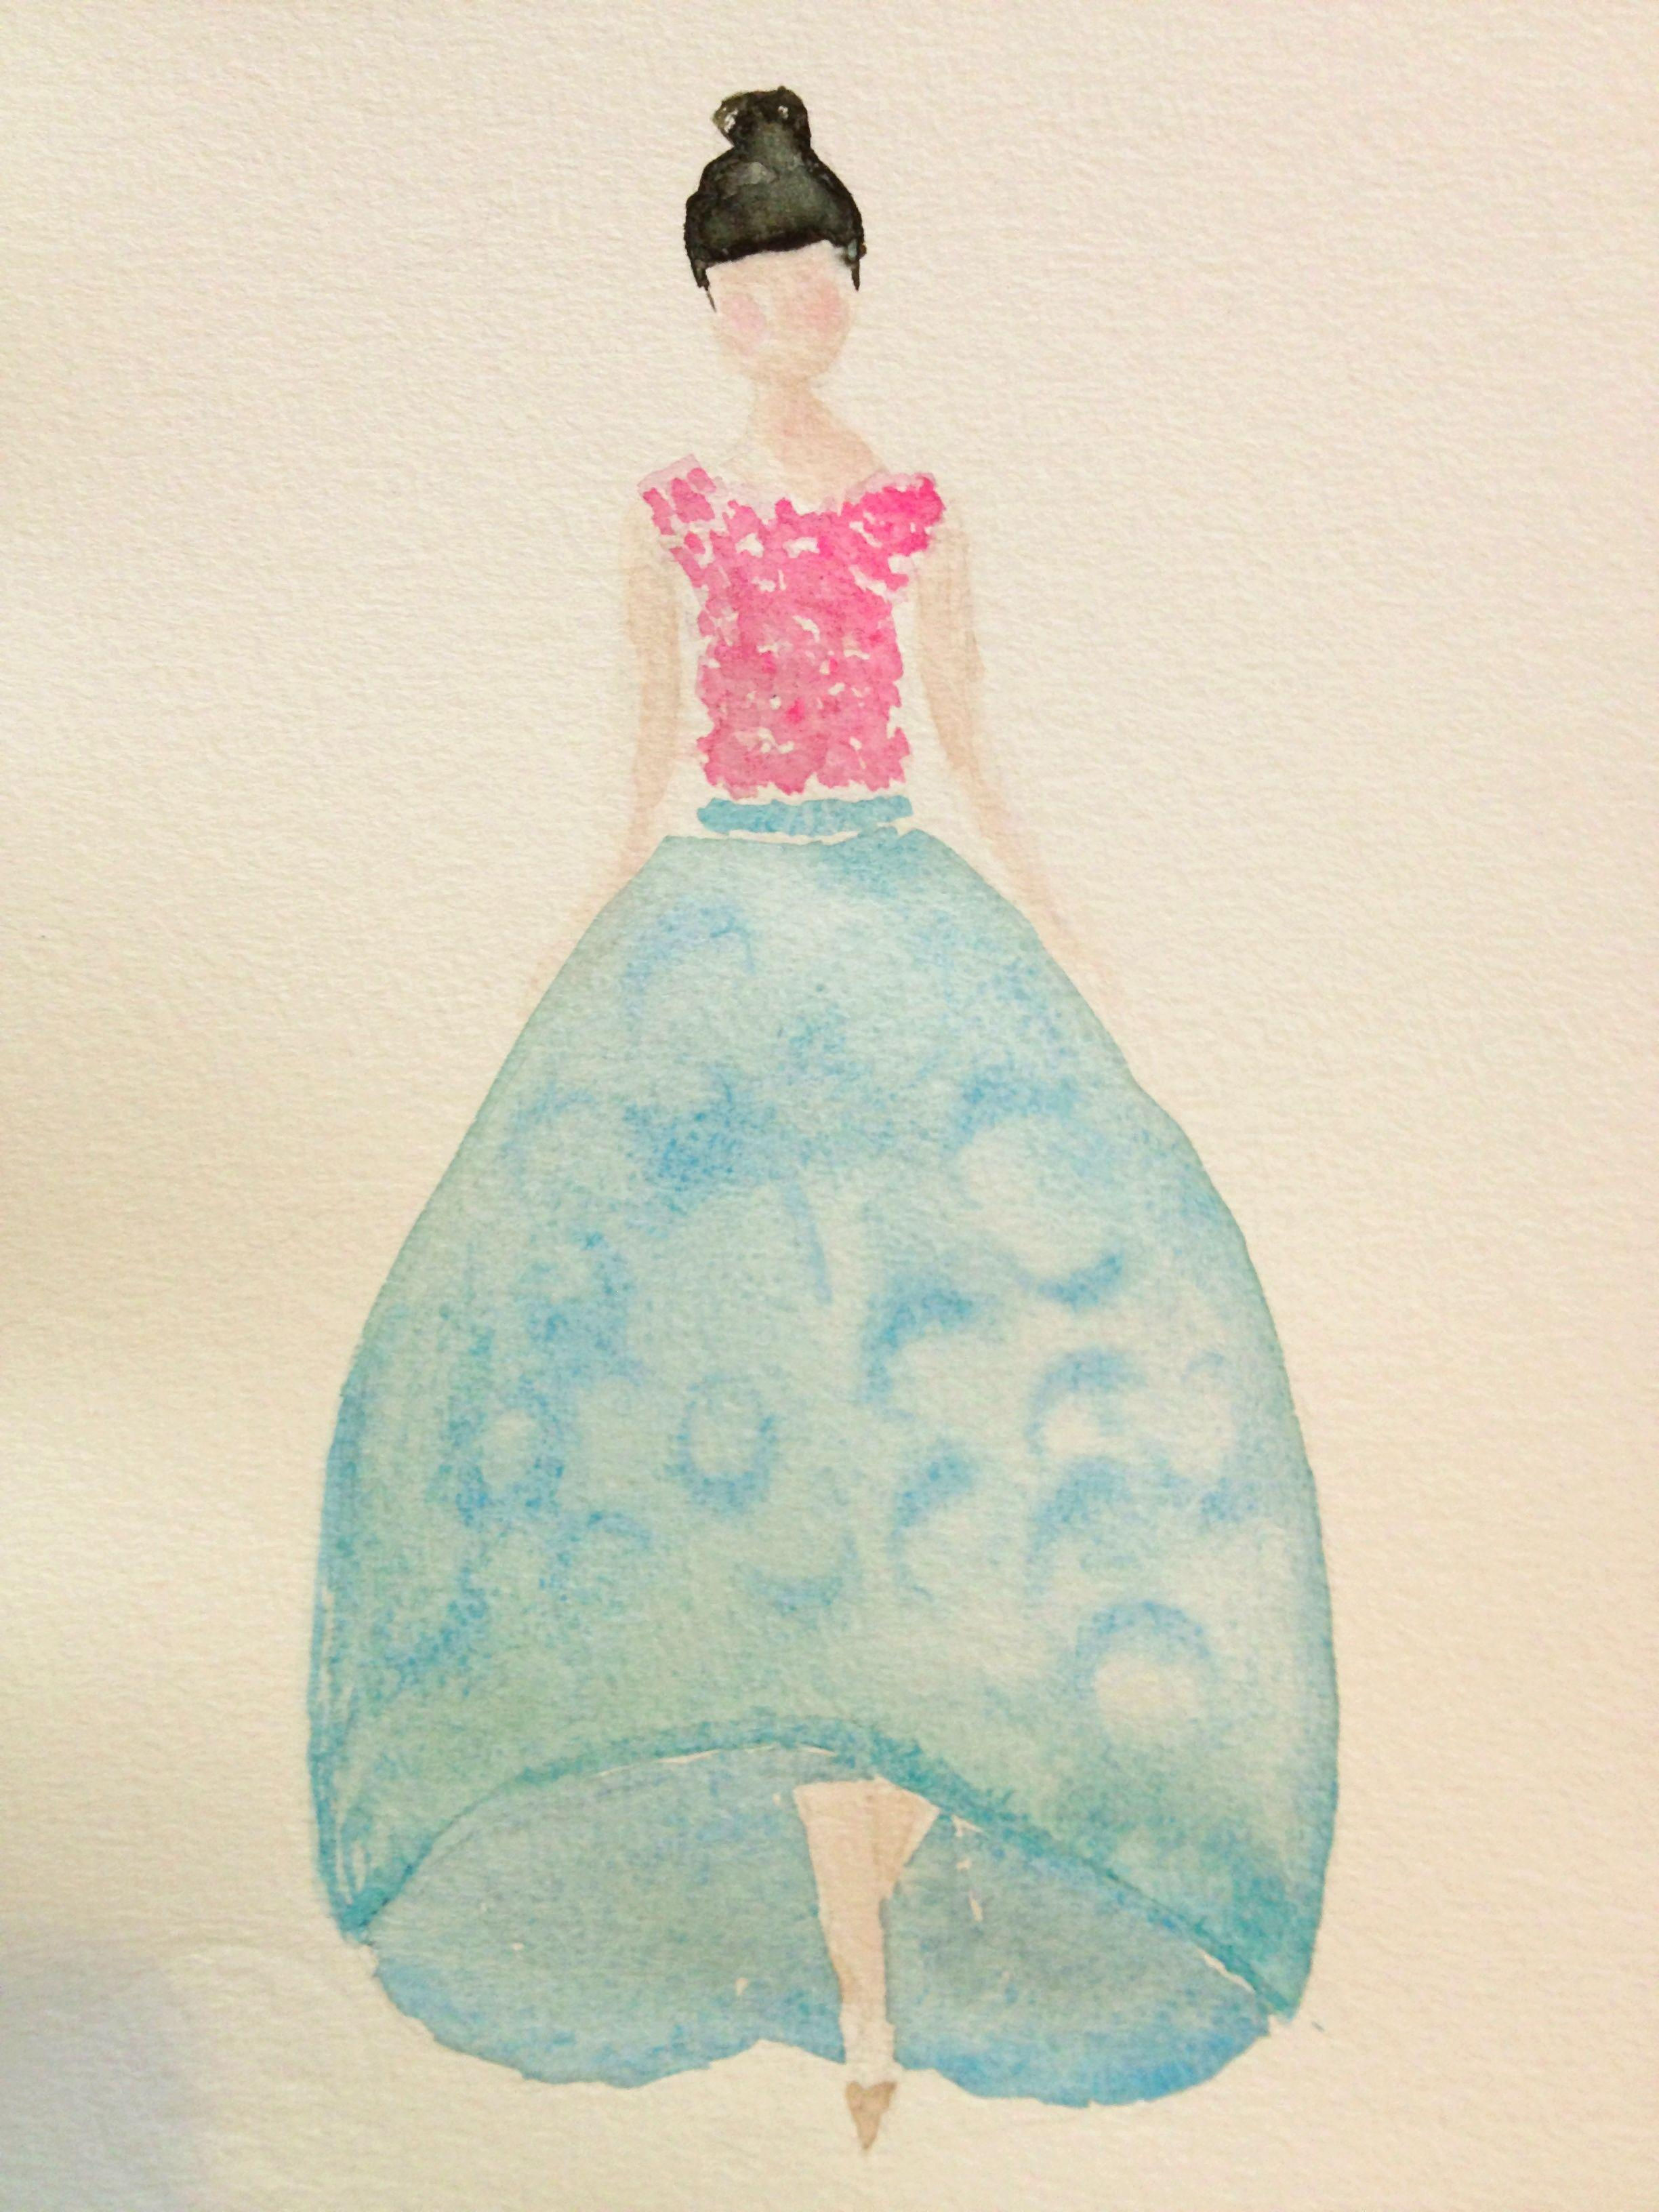 EMBELLISHMENT: My favorite color is shiny - image 5 - student project